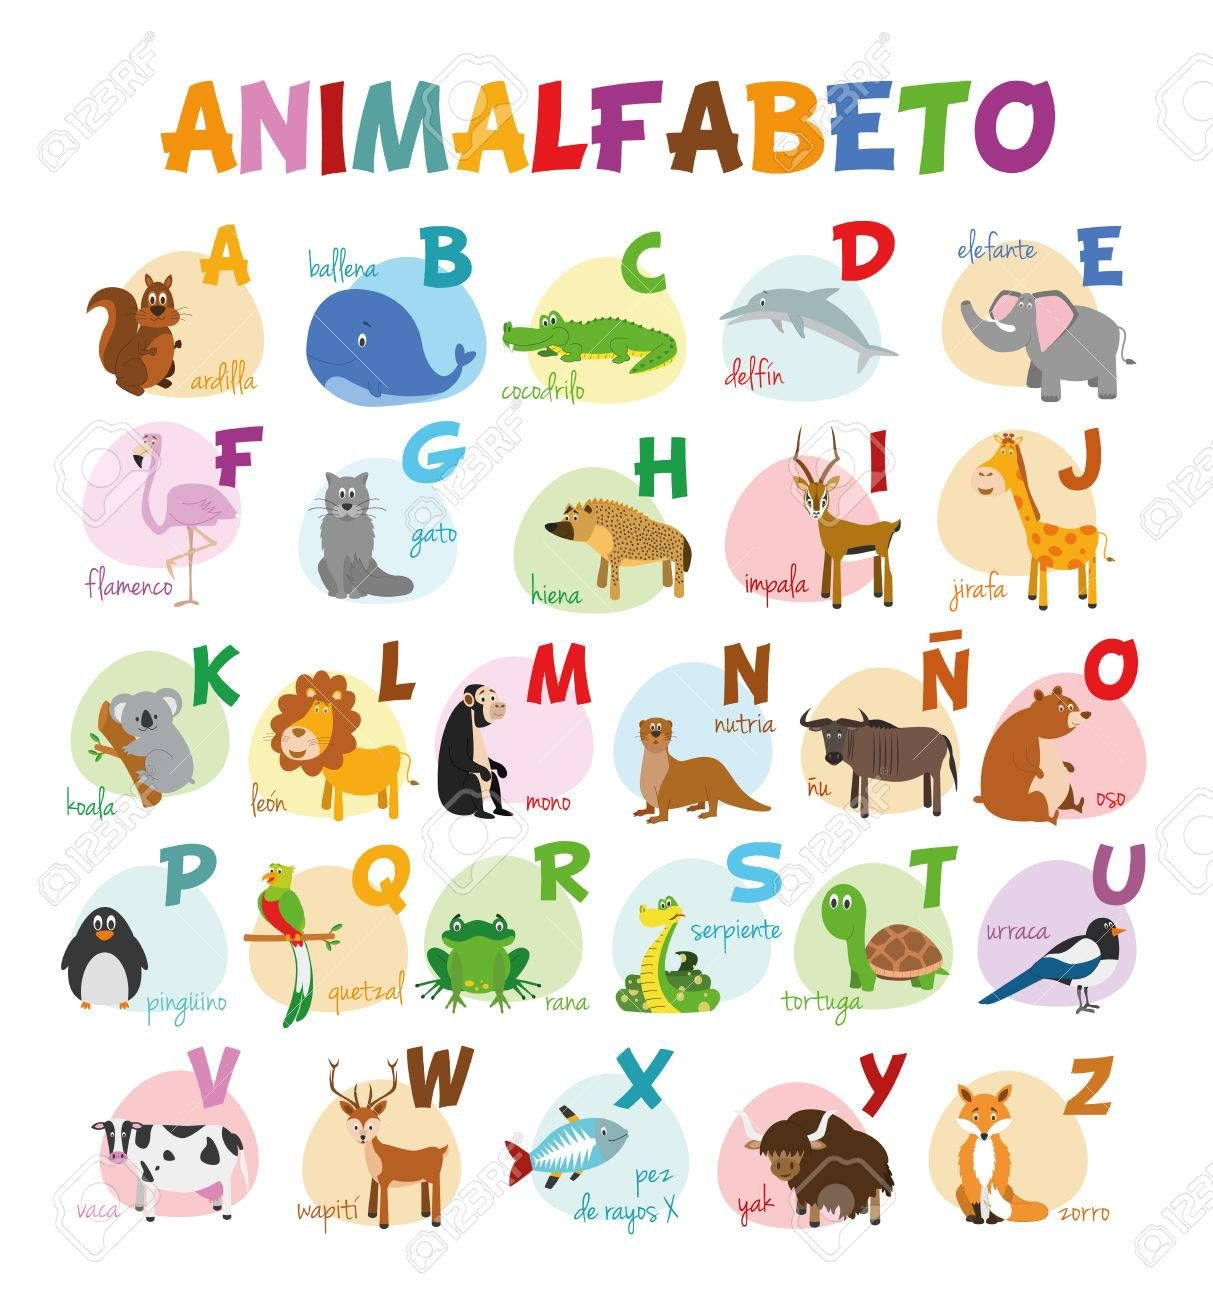 Cute Cartoon Illustrated Alphabet With Funny Zoo Animals Spanish Alphabet Learn To Read I El Abecedario En Espanol Alfabeto Para Ninos Abecedario Para Ninos